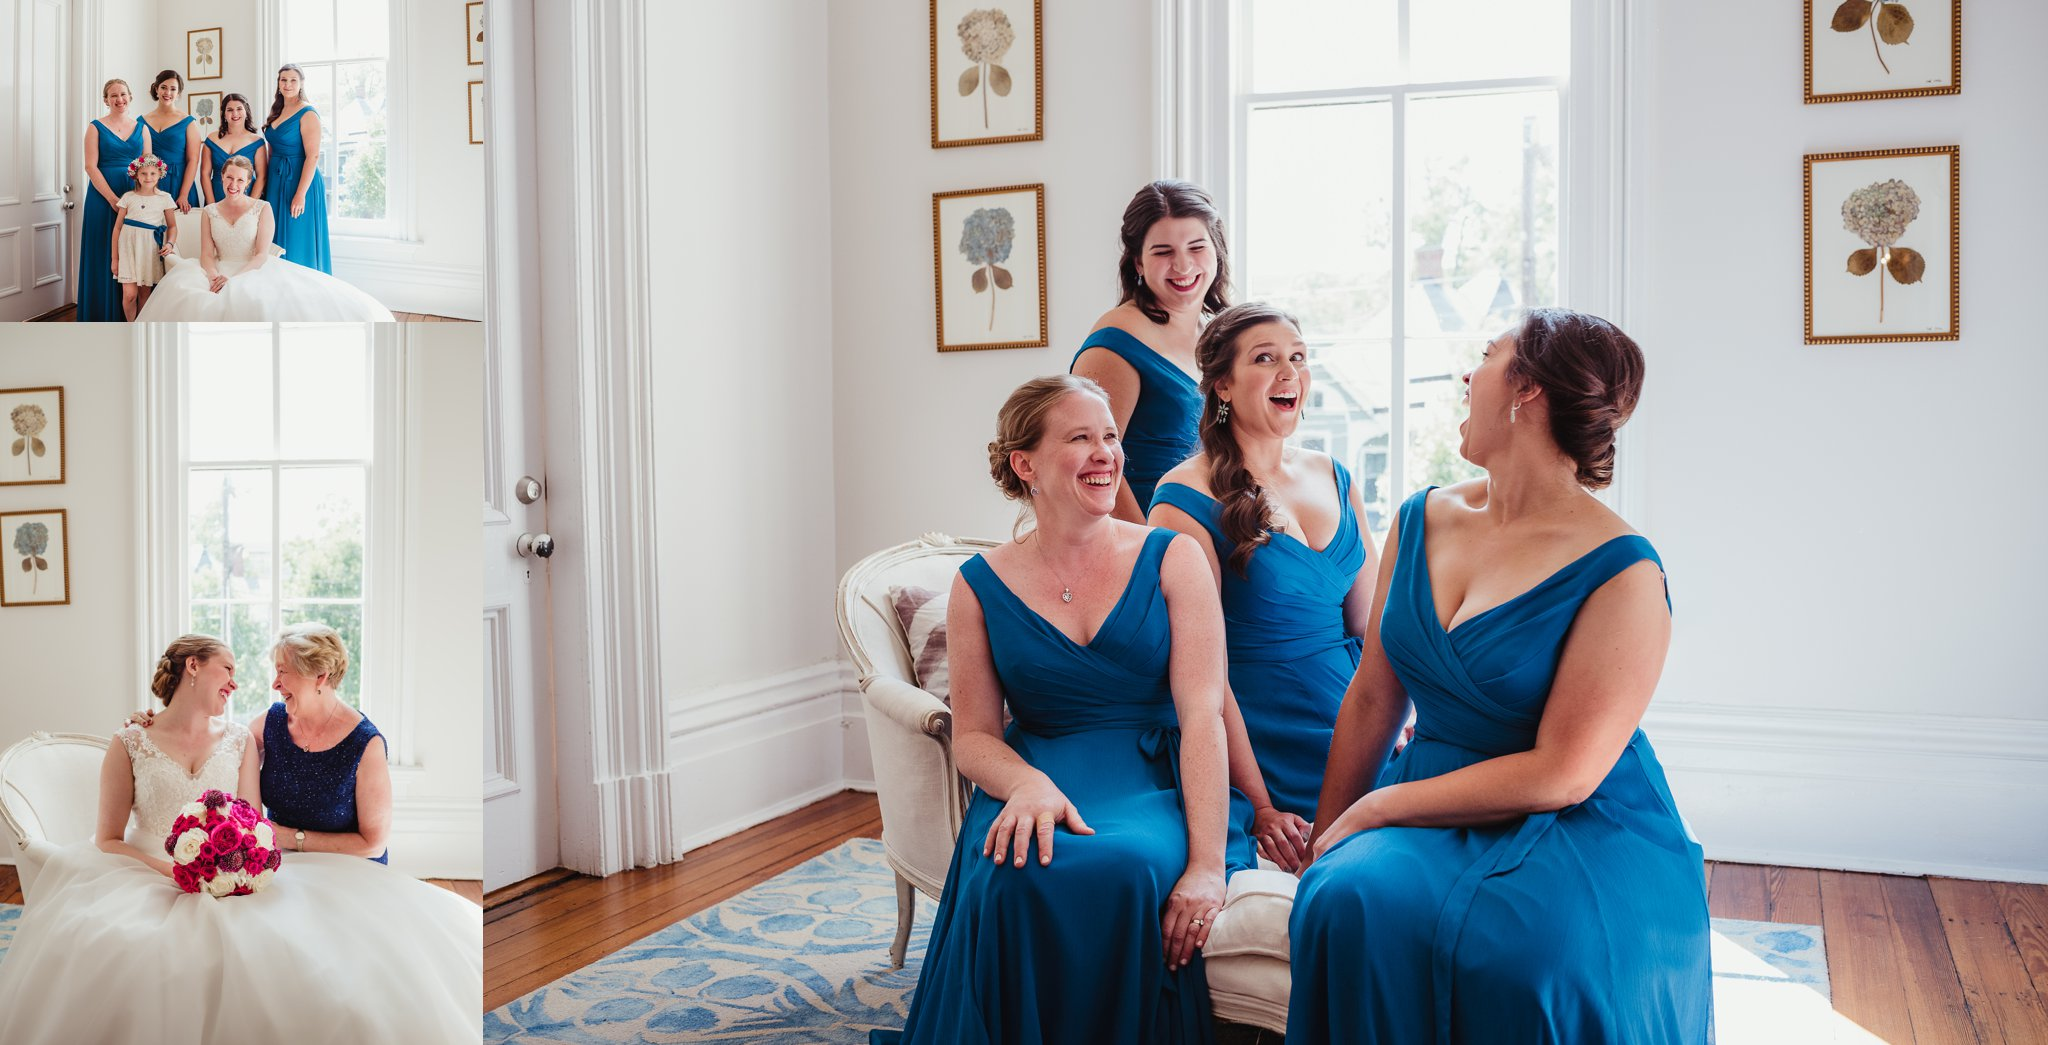 The bride posing with her bridesmaids and her Mom before her wedding at the Merrimon Wynne in Raleigh, photos by Rose Trail Images.